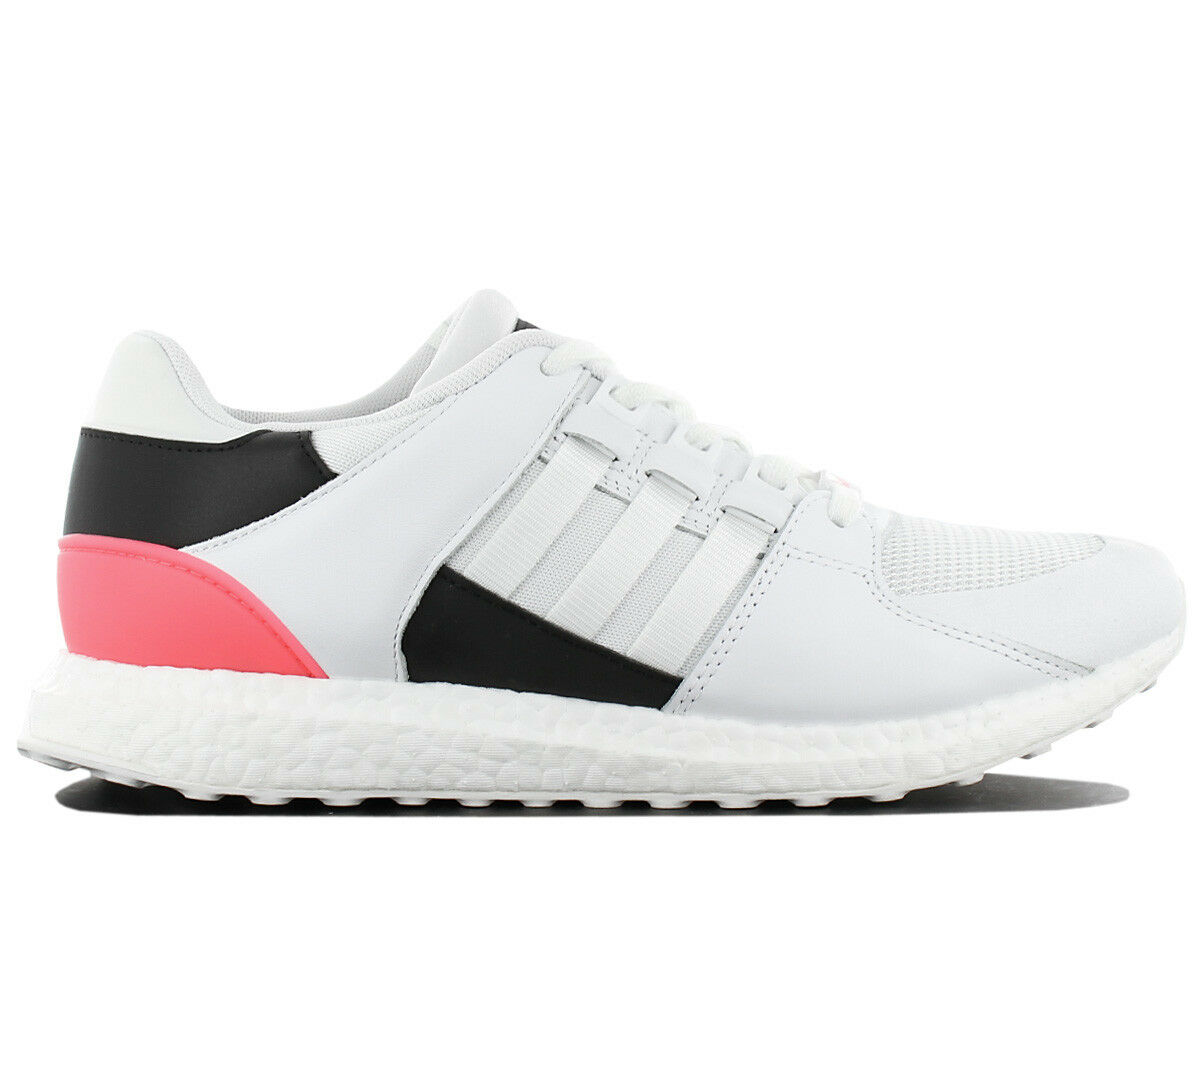 Adidas Originals EQT equipment support ultra Boost calcetines cortos zapatos ba7474